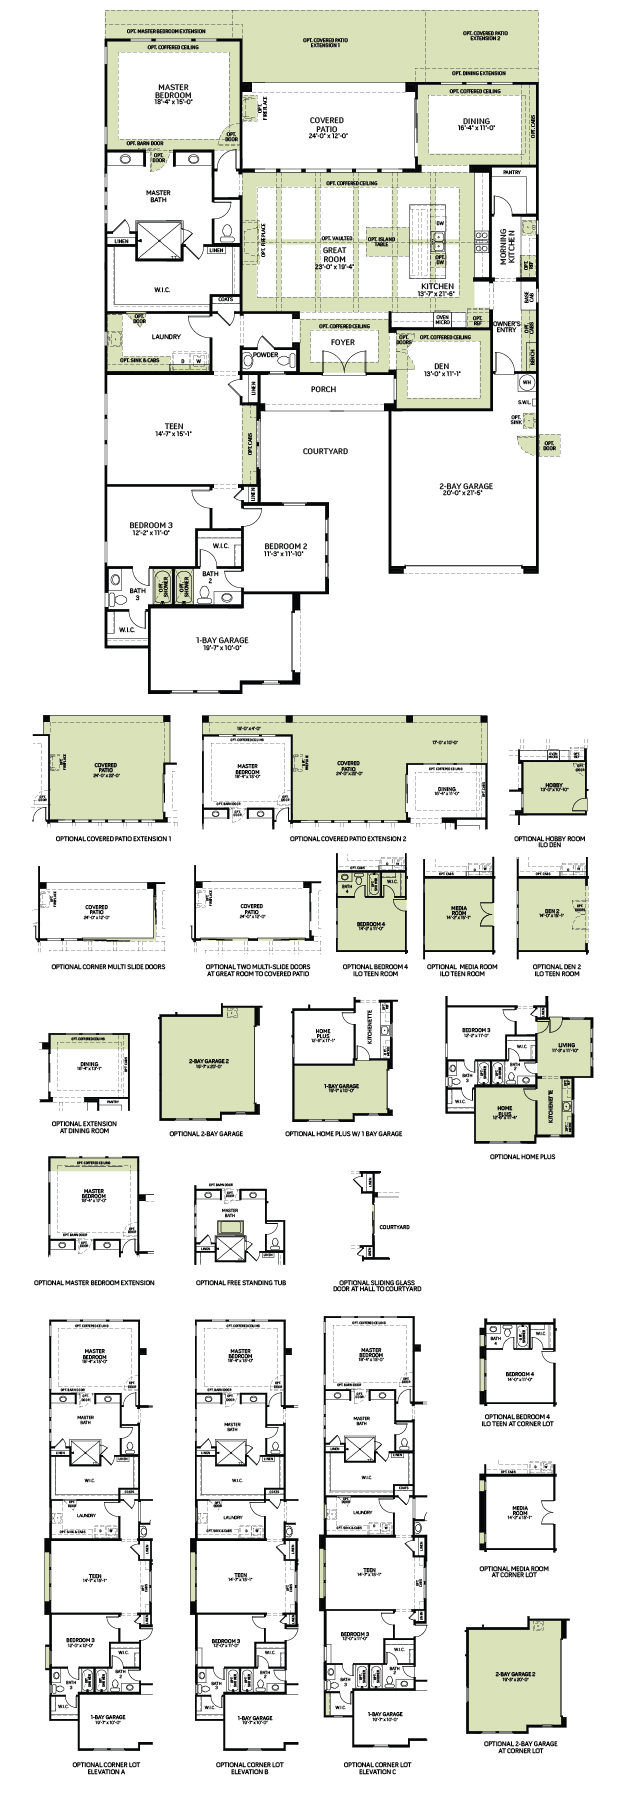 Charm | Home+ Floorplan